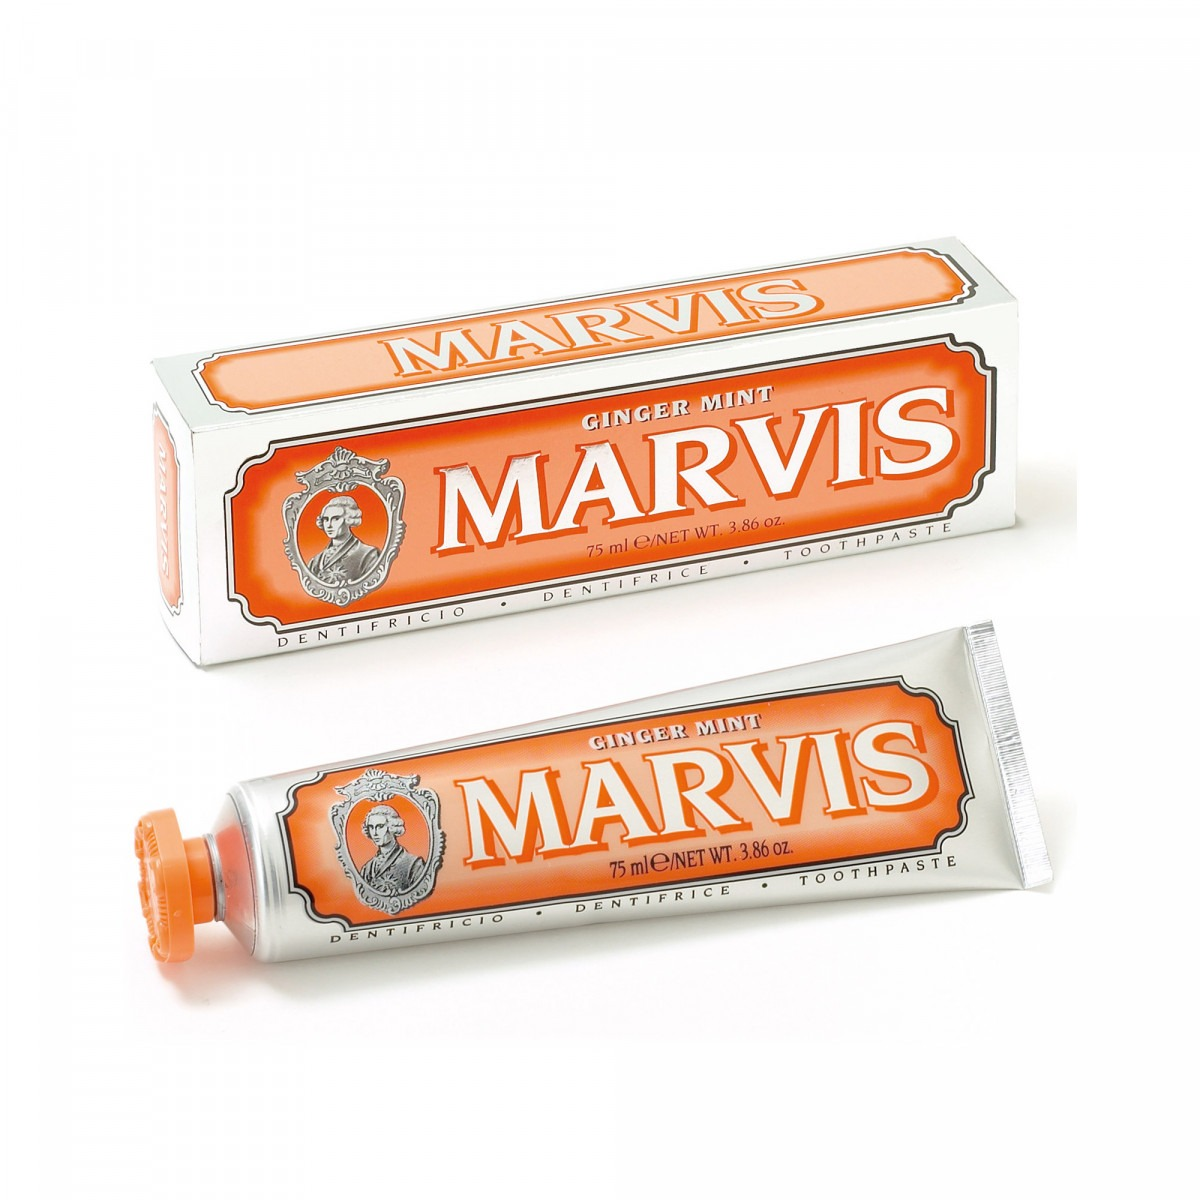 Marvis toothpaste ginger mint 75 ml